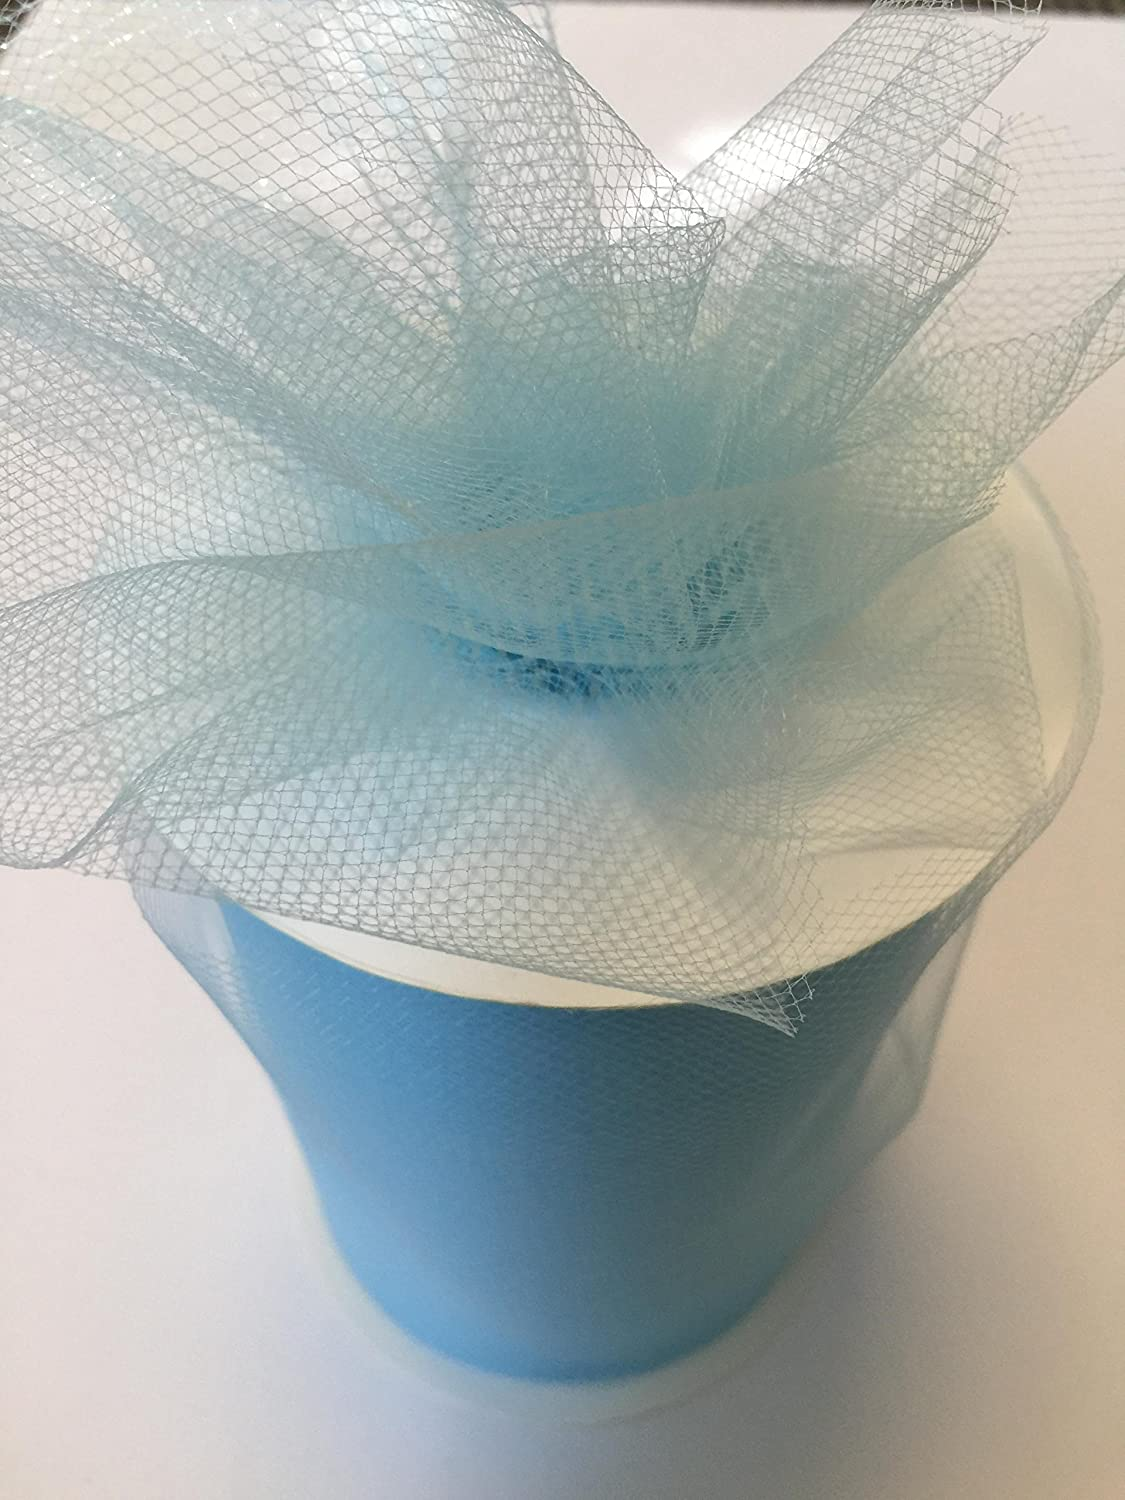 300 feet 34 Colors Available Tulle Fabric Spool//Roll 6 inch x 100 yards aqua On Sale Now!